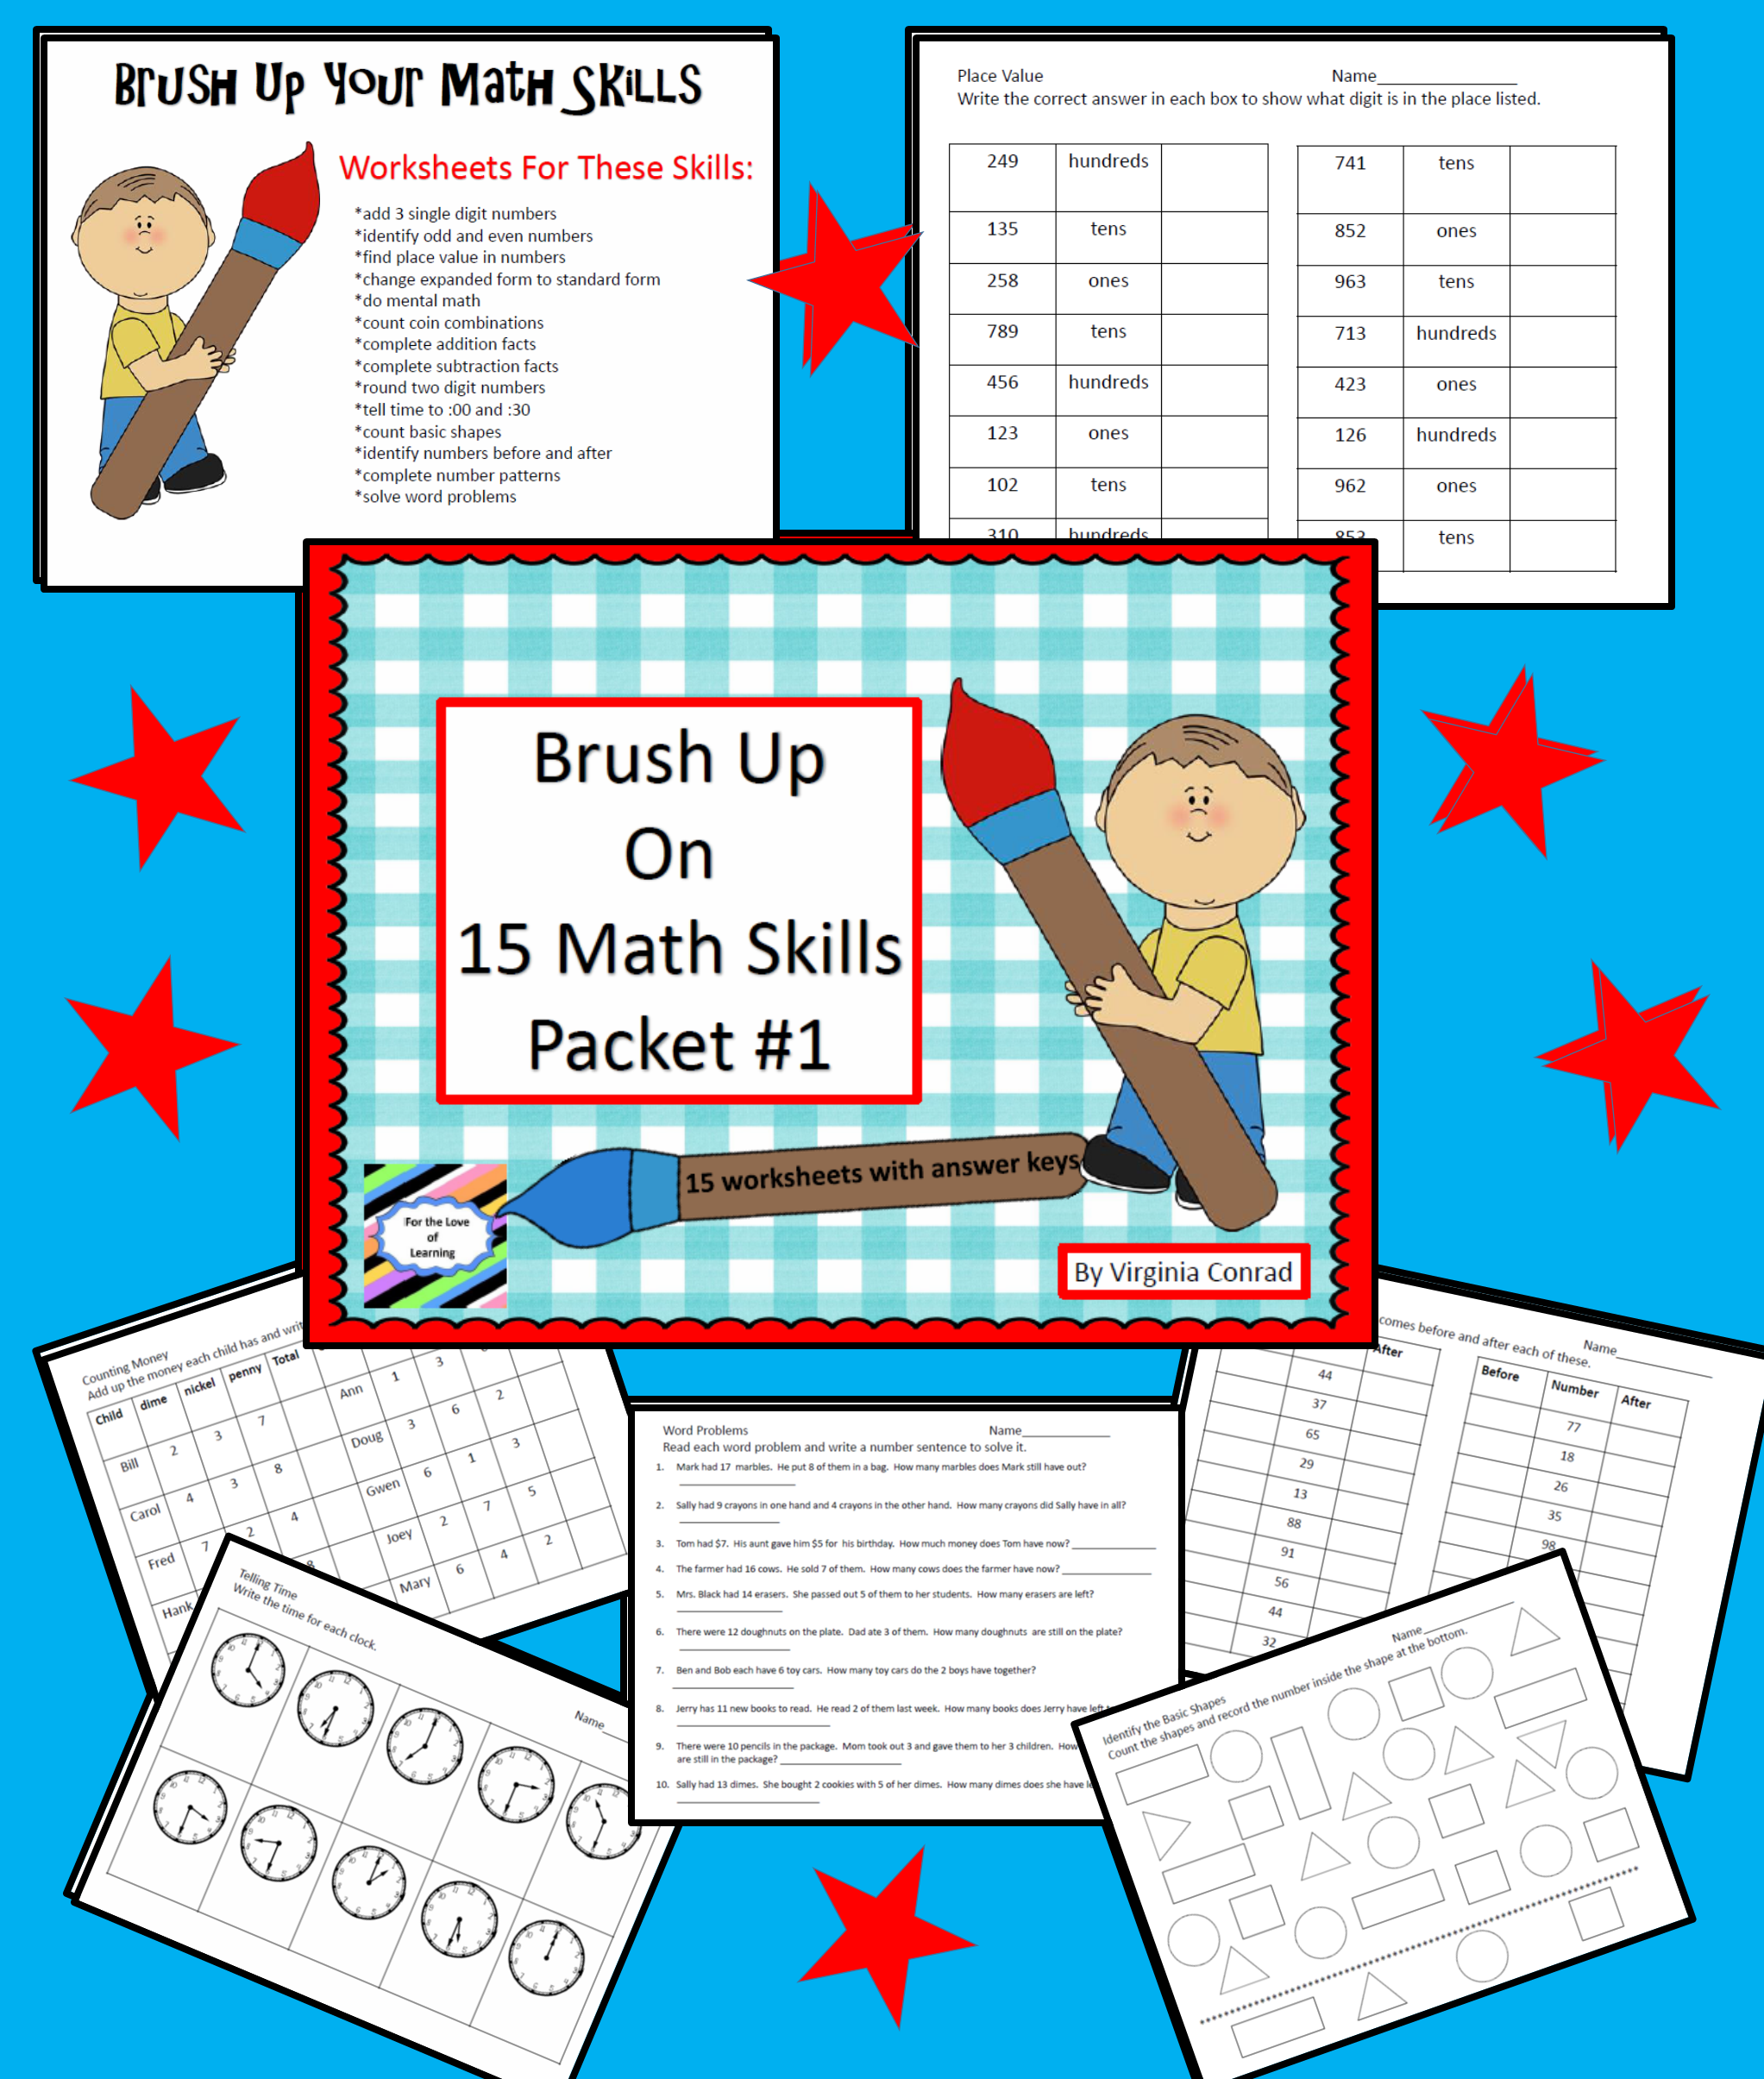 Brush Up on Math Skills---Packet #1 | Math skills, Homework and ...